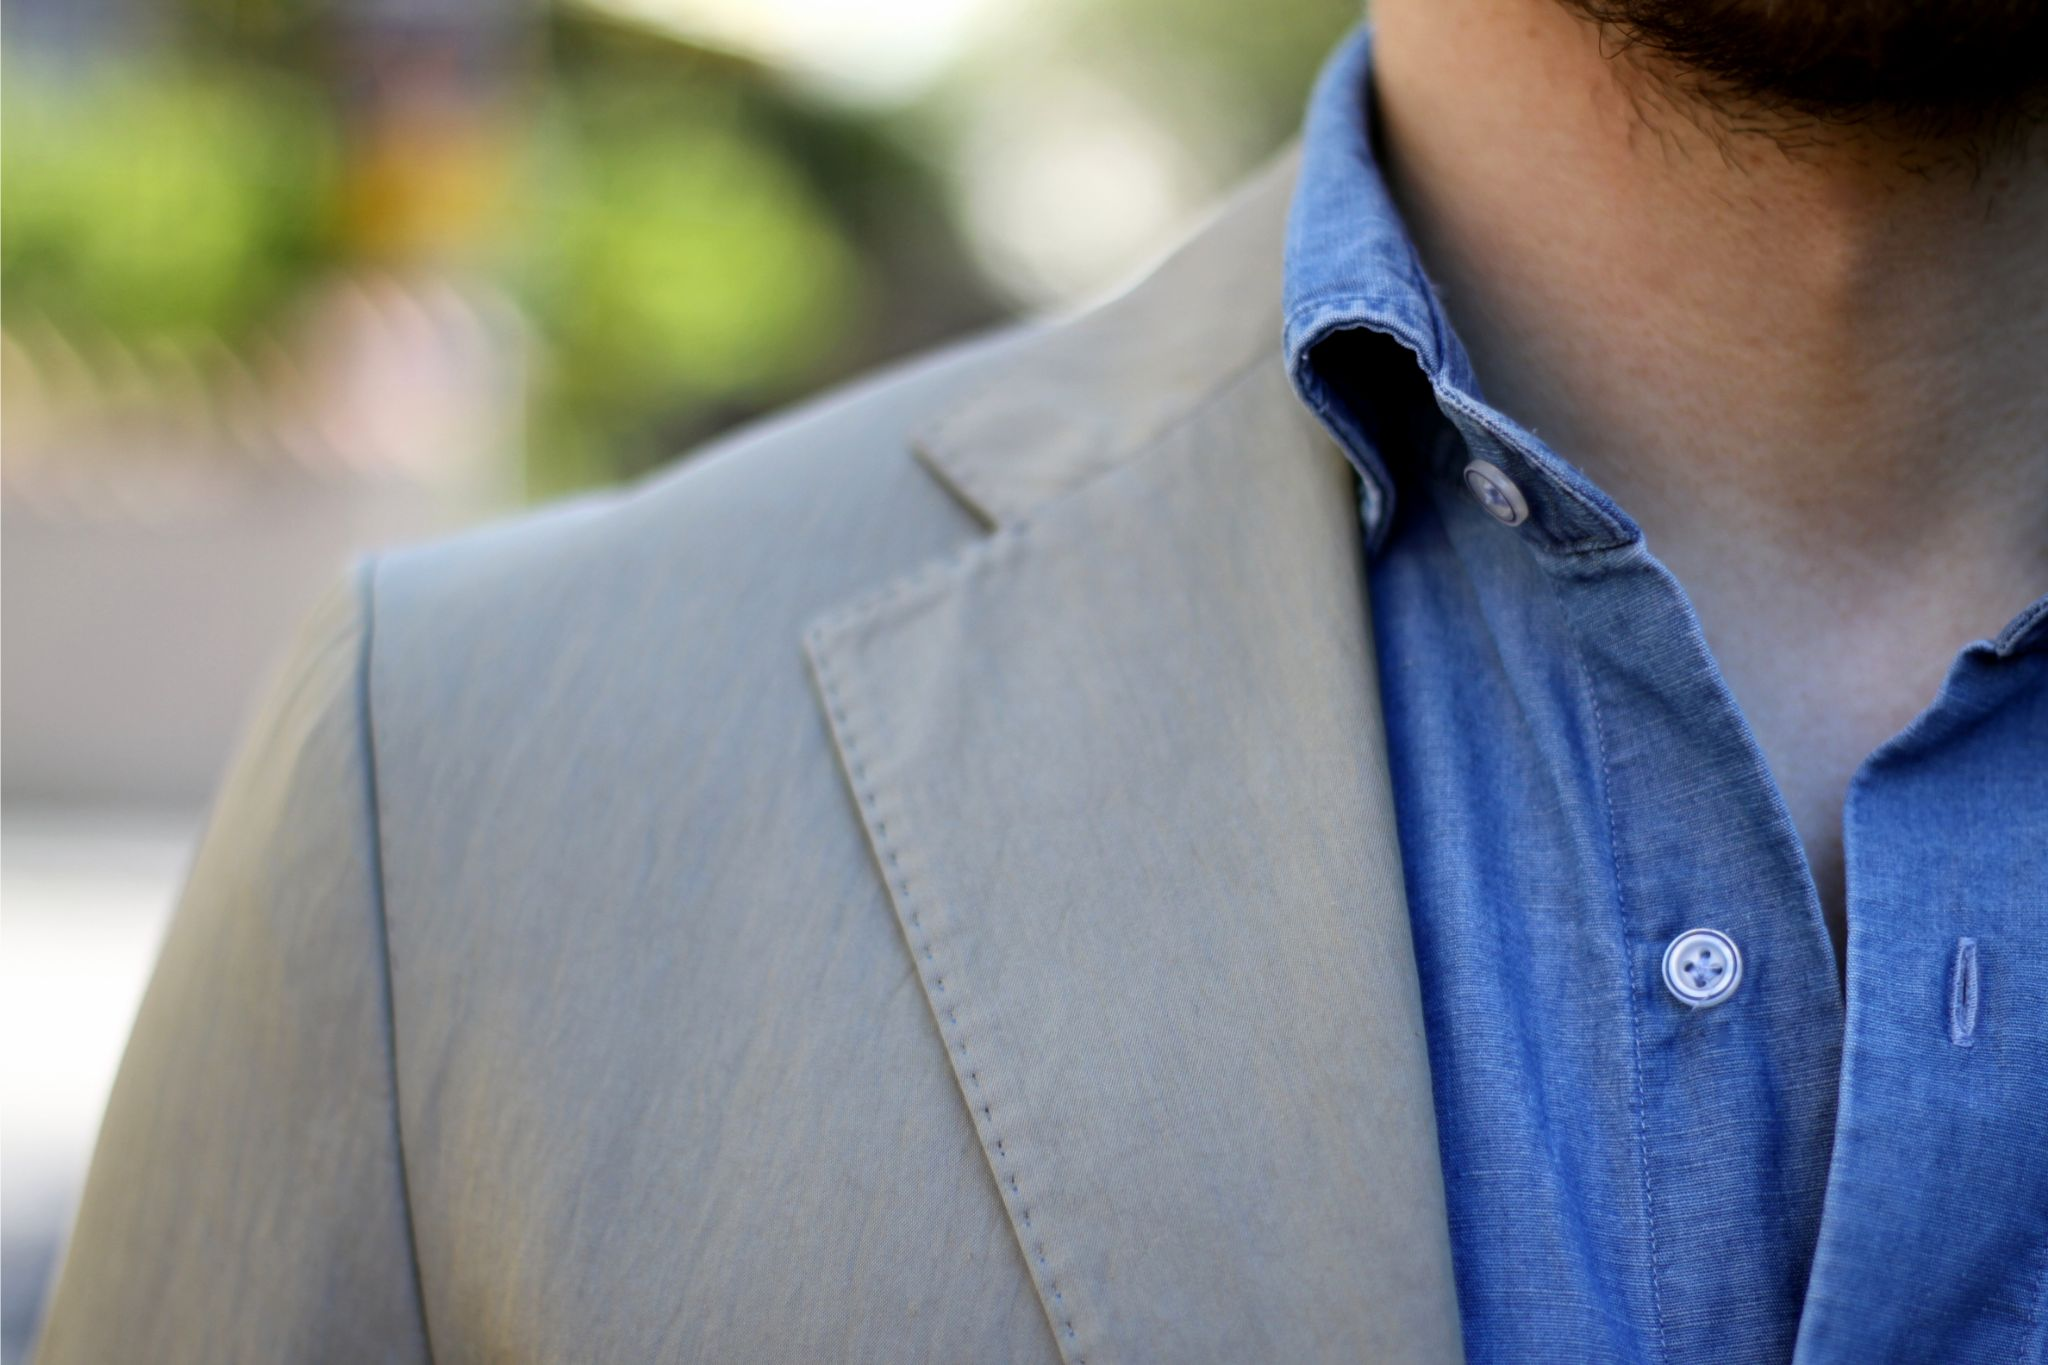 Suit without tie - denim shirt collar details